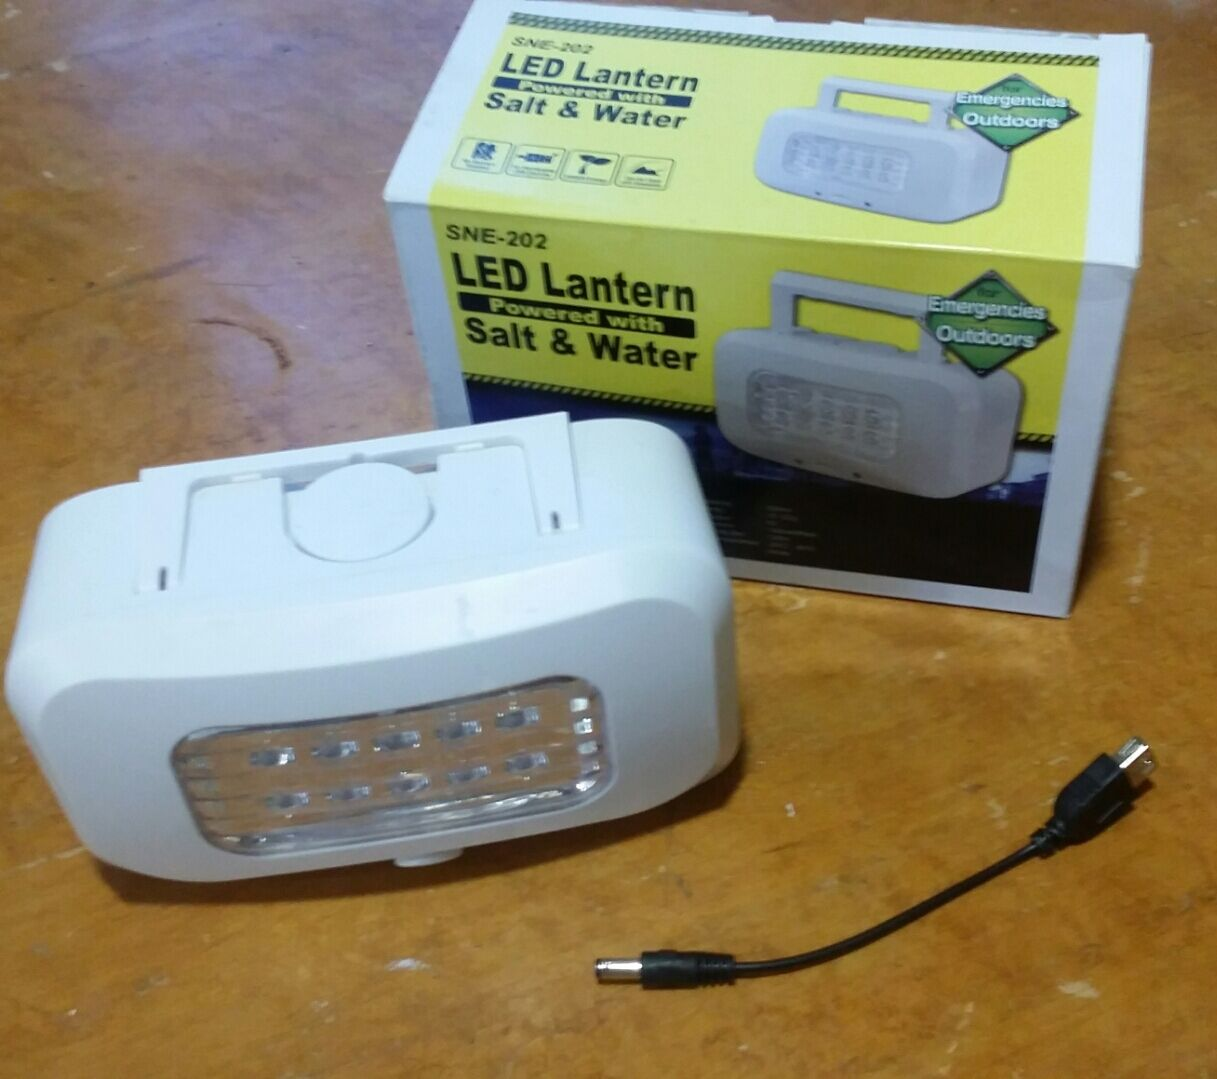 Led Lantern Powered by  Salt Water  save up to 80%